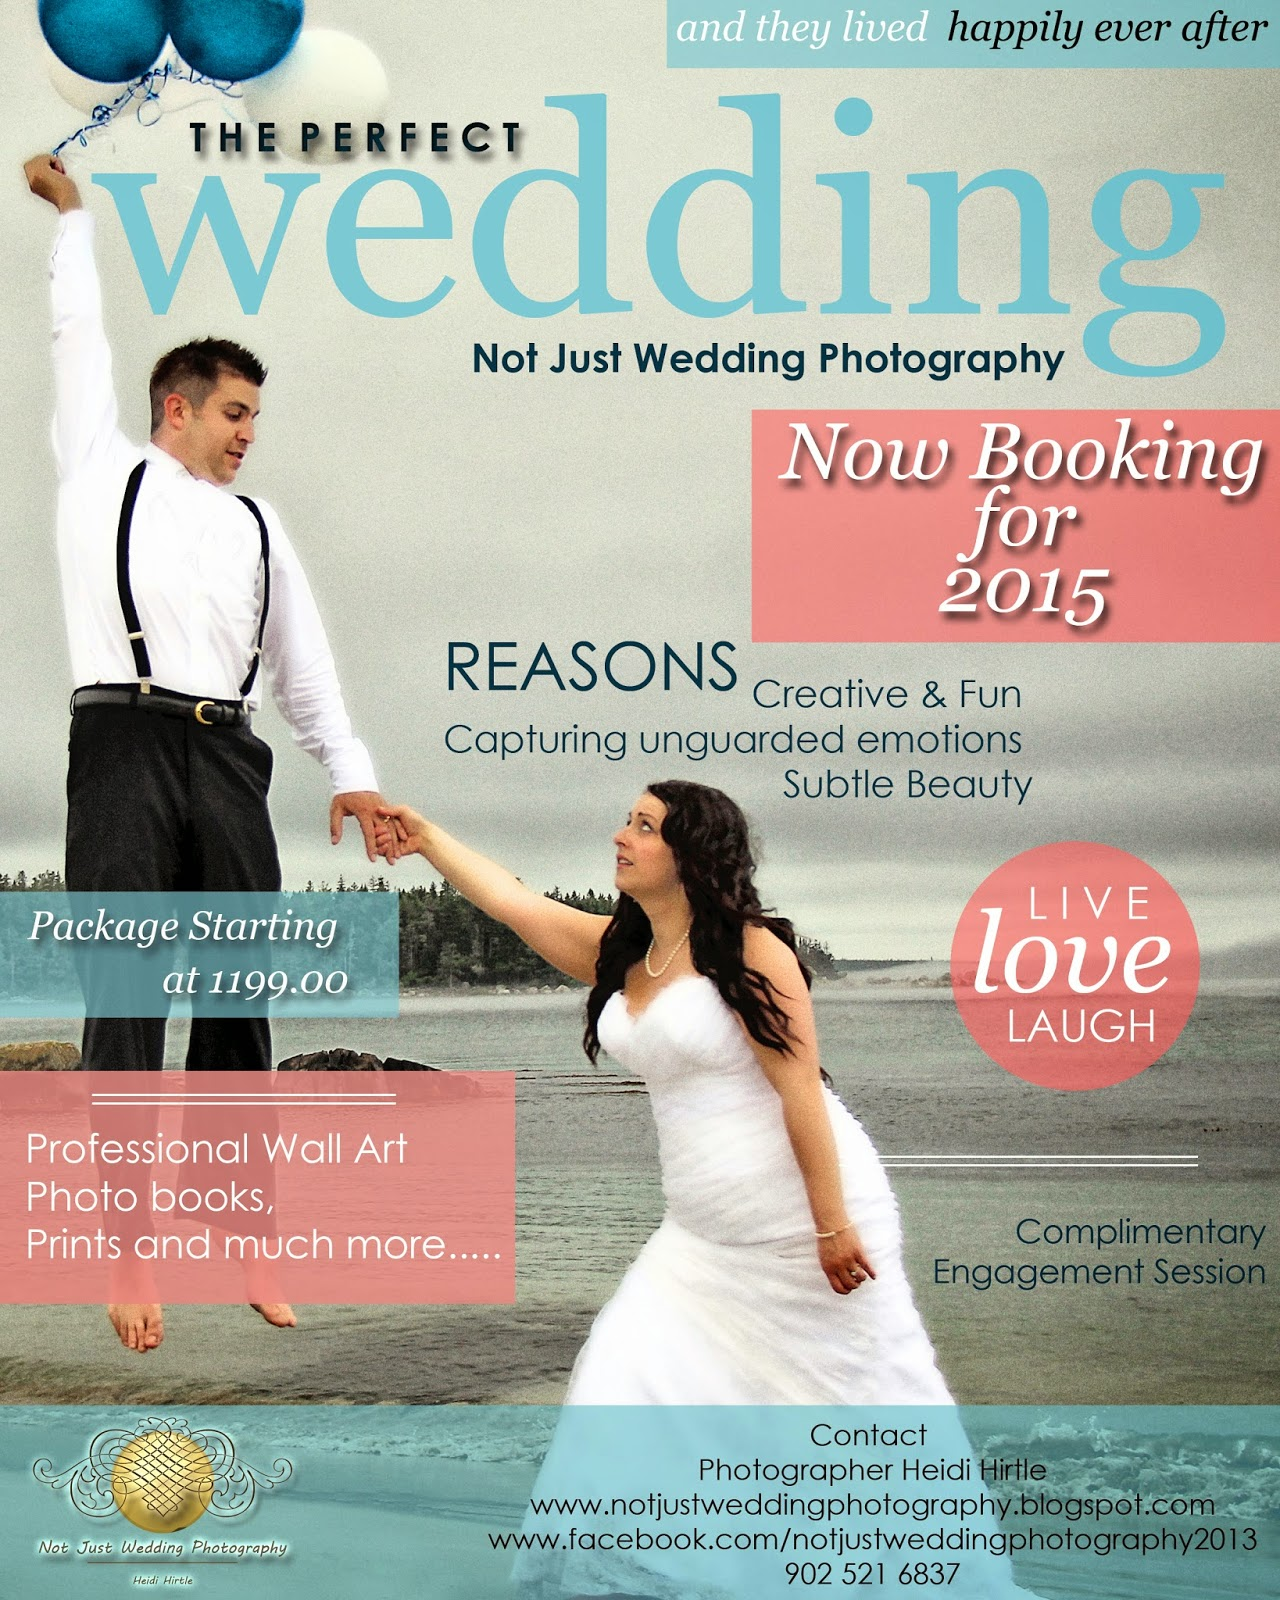 Not Just Wedding Photography